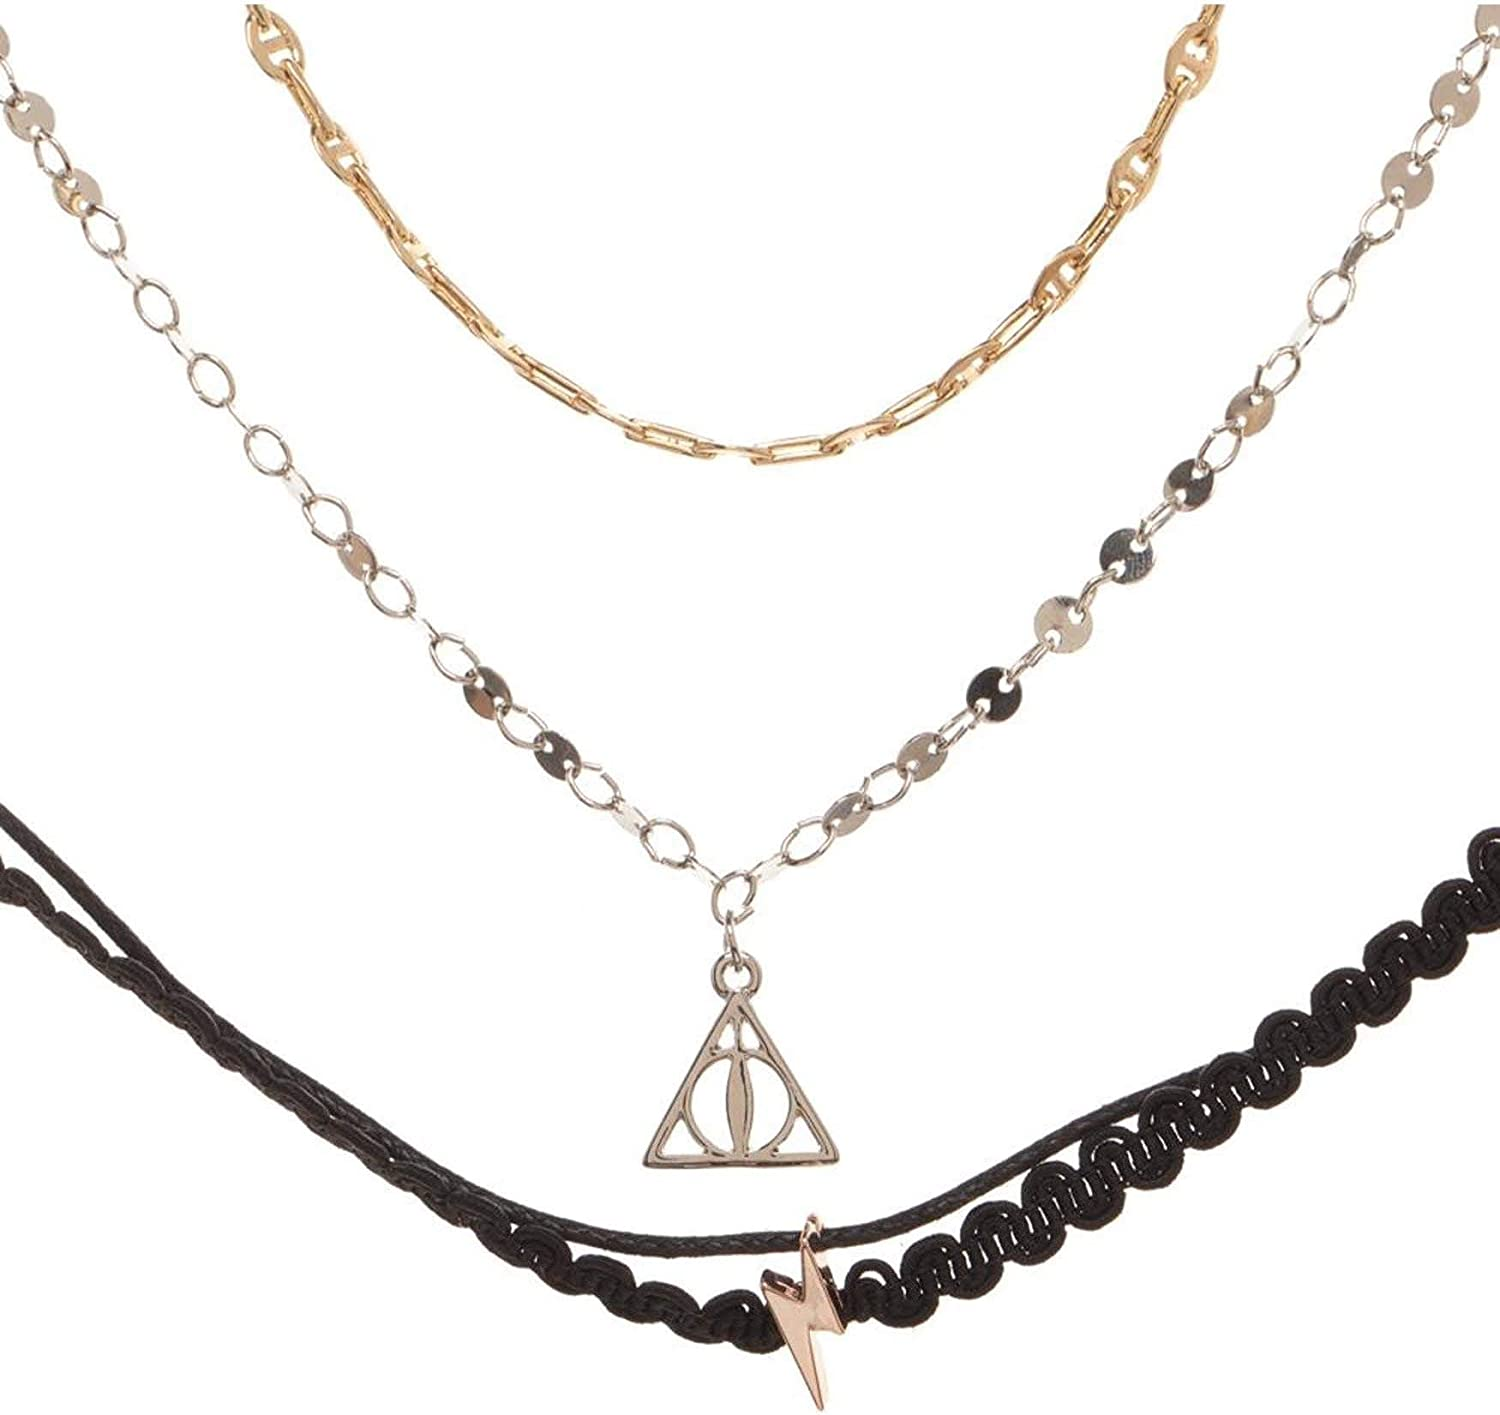 Bioworld Merchandising / Independent Sales Harry Potter 3 Pack Choker Necklace Set Standard: Amazon.es: Joyería